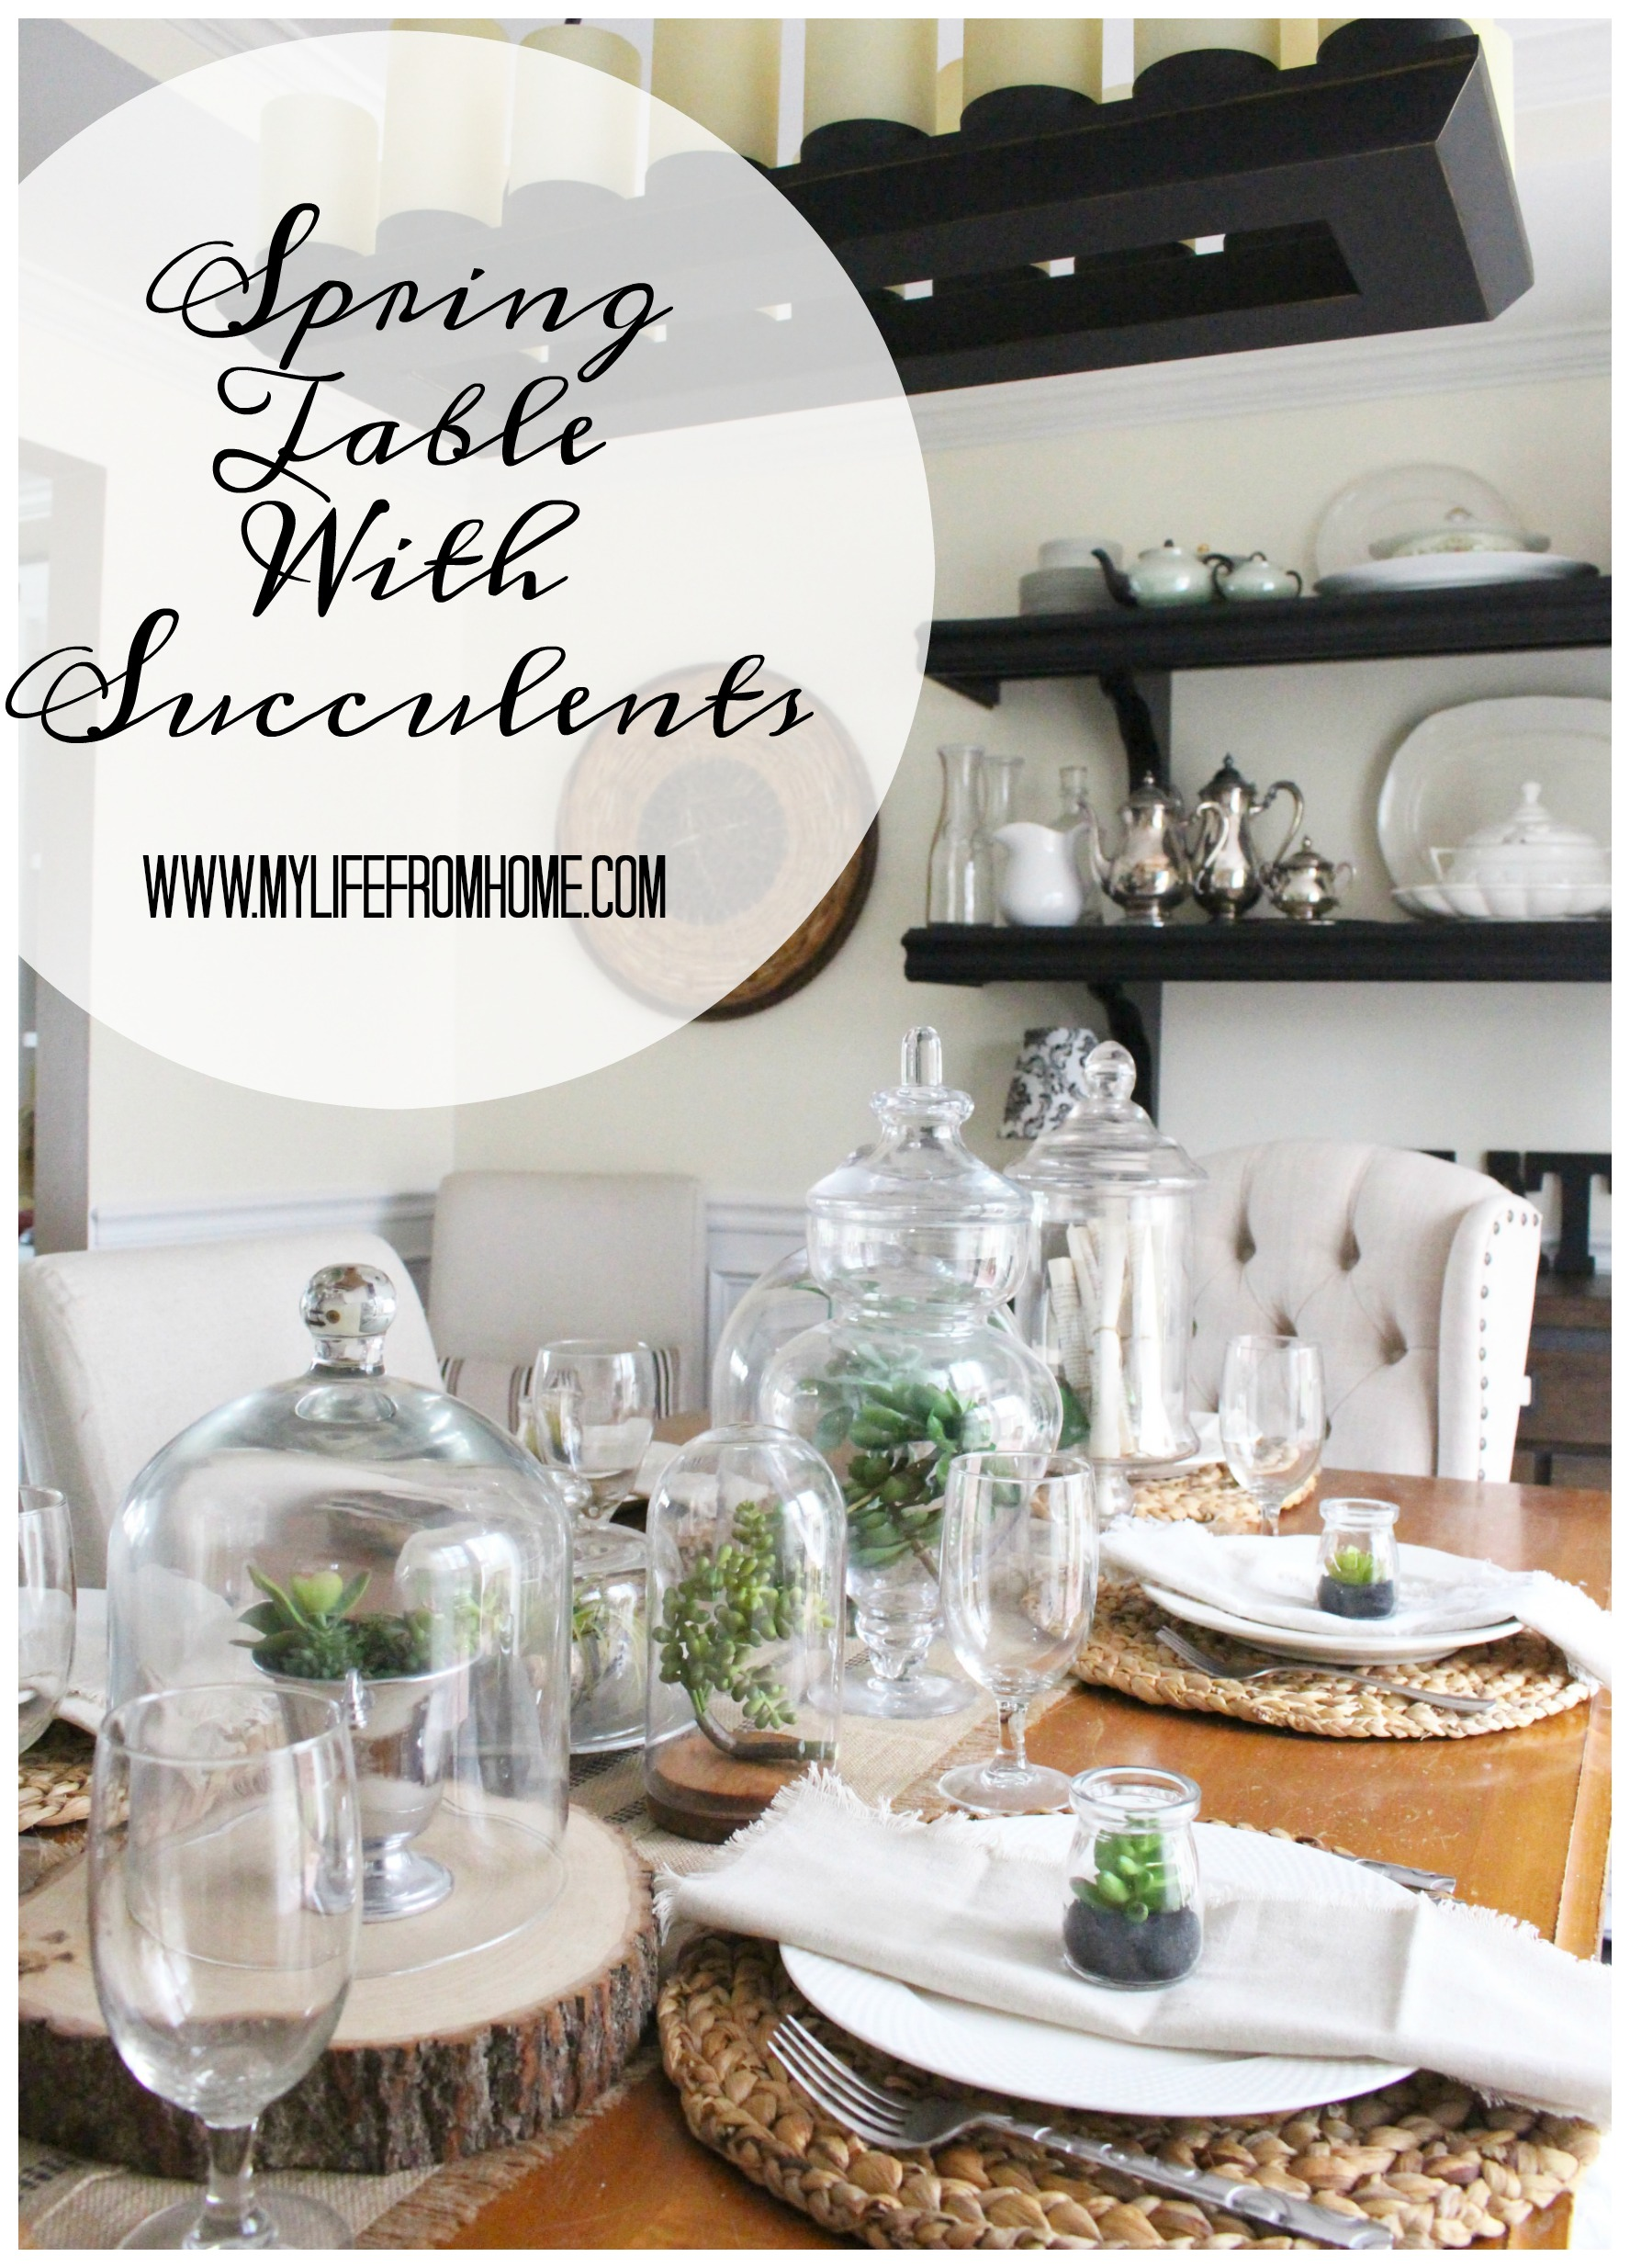 Spring-Table-With-Succulents-spring-decor-spring-table-setting-succulents-table-setting-spring-decorating-cloches